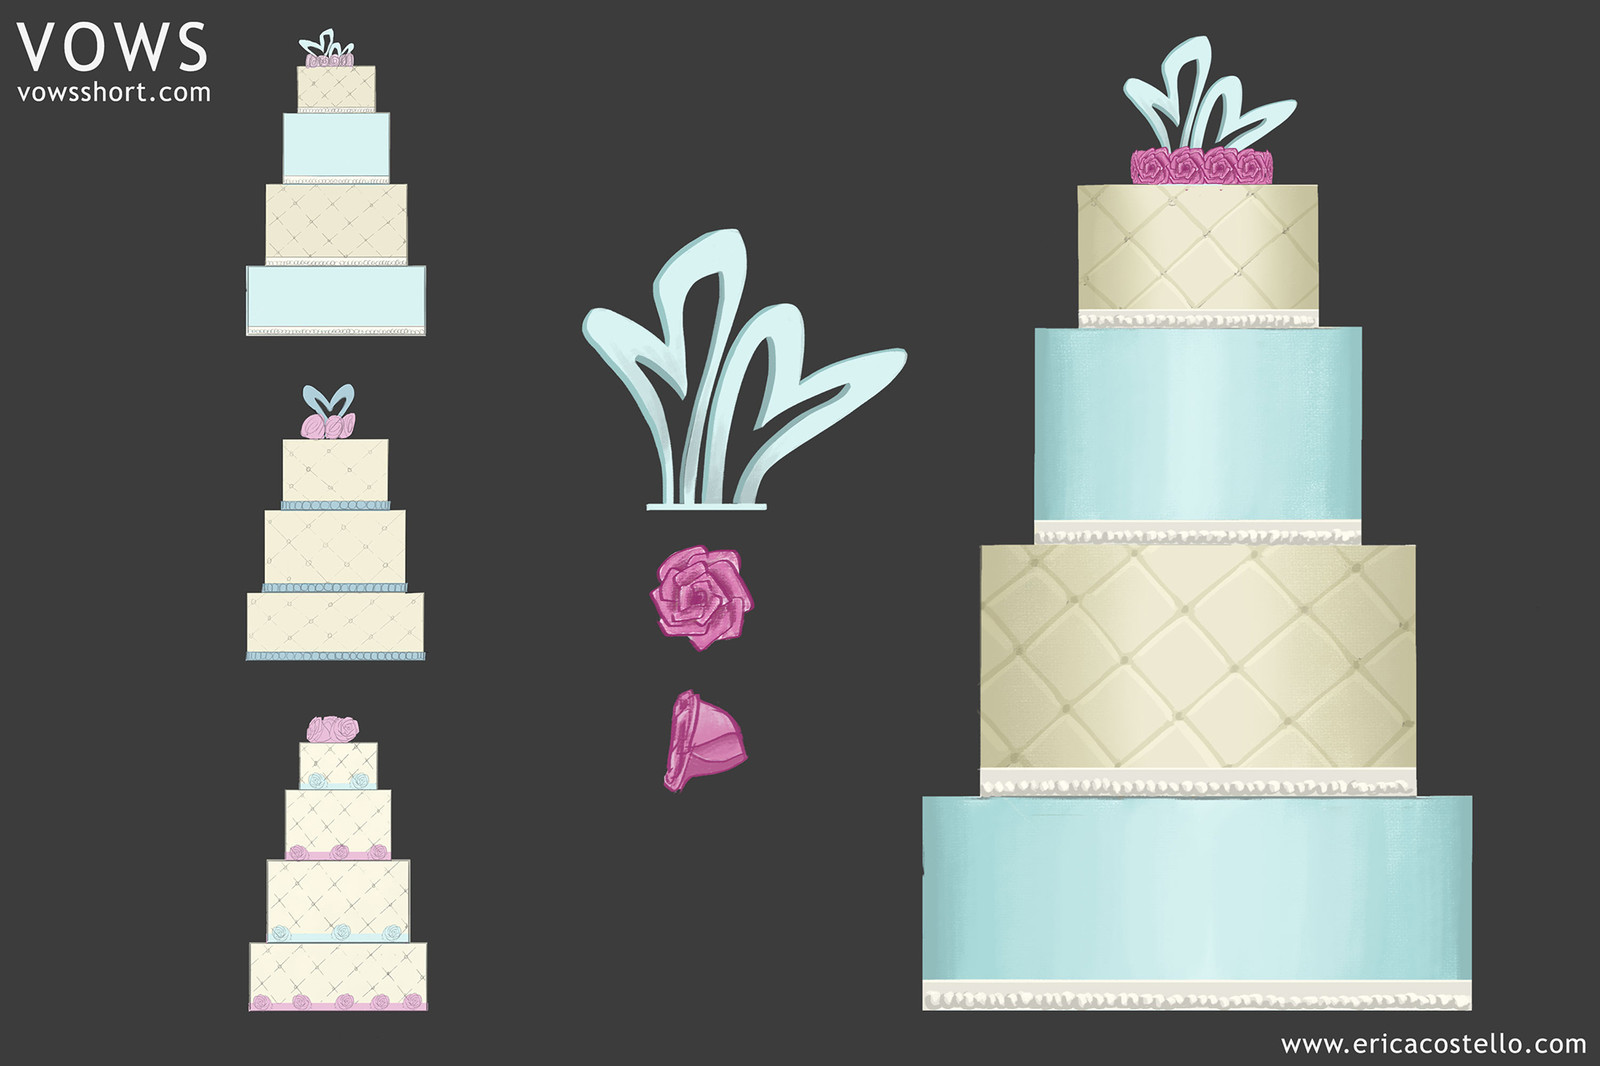 Vows - Wedding Cake Design